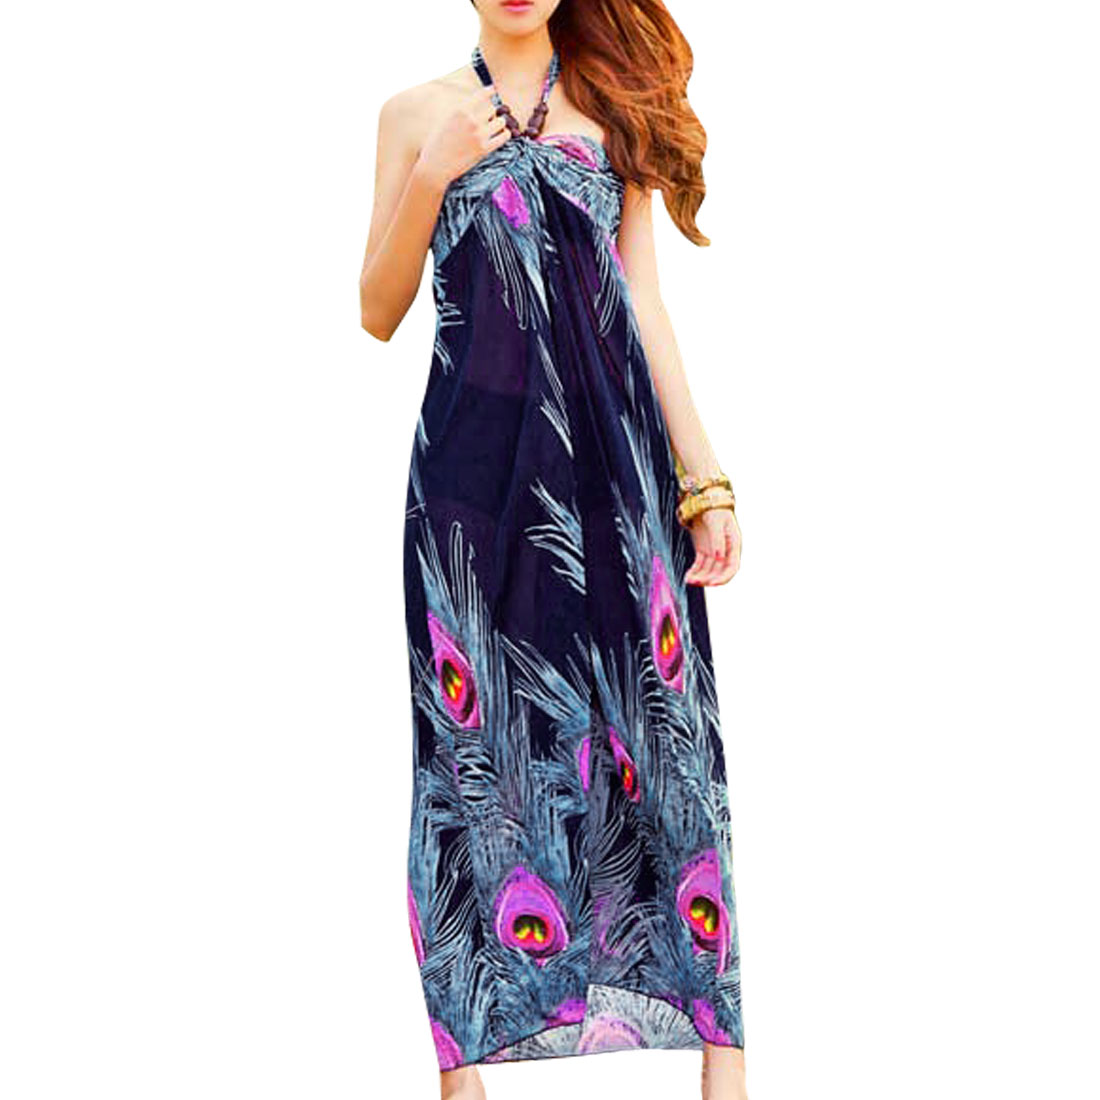 Women Peacock Feathers Printed Dark Blue Ruffled Selt Tie Strap Halter Dress XS